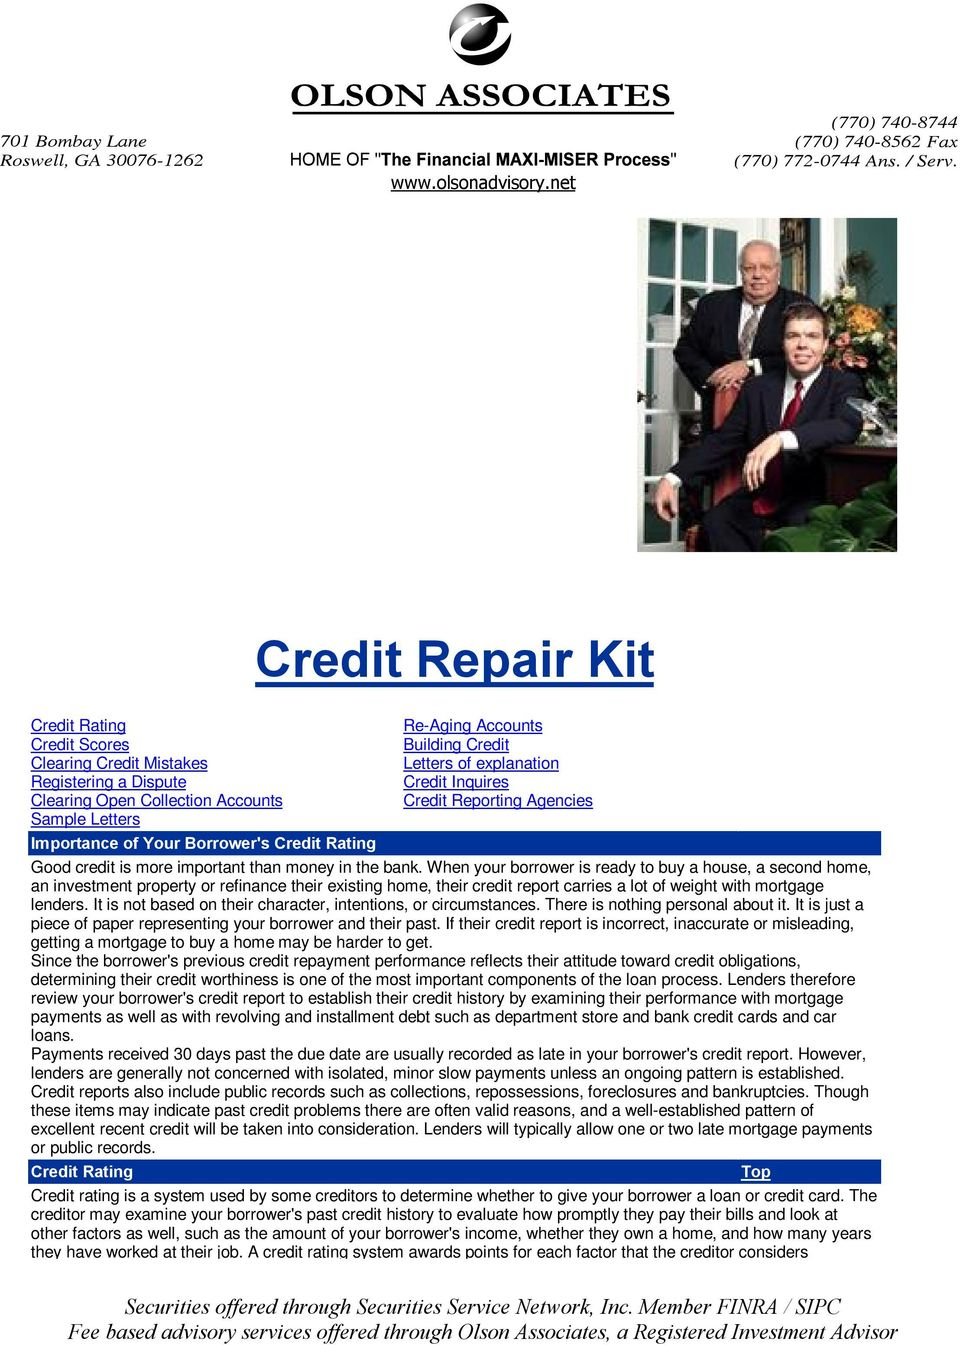 explanation Credit Inquires Credit Reporting Agencies Importance of Your Borrower's Credit Rating Good credit is more important than money in the bank.